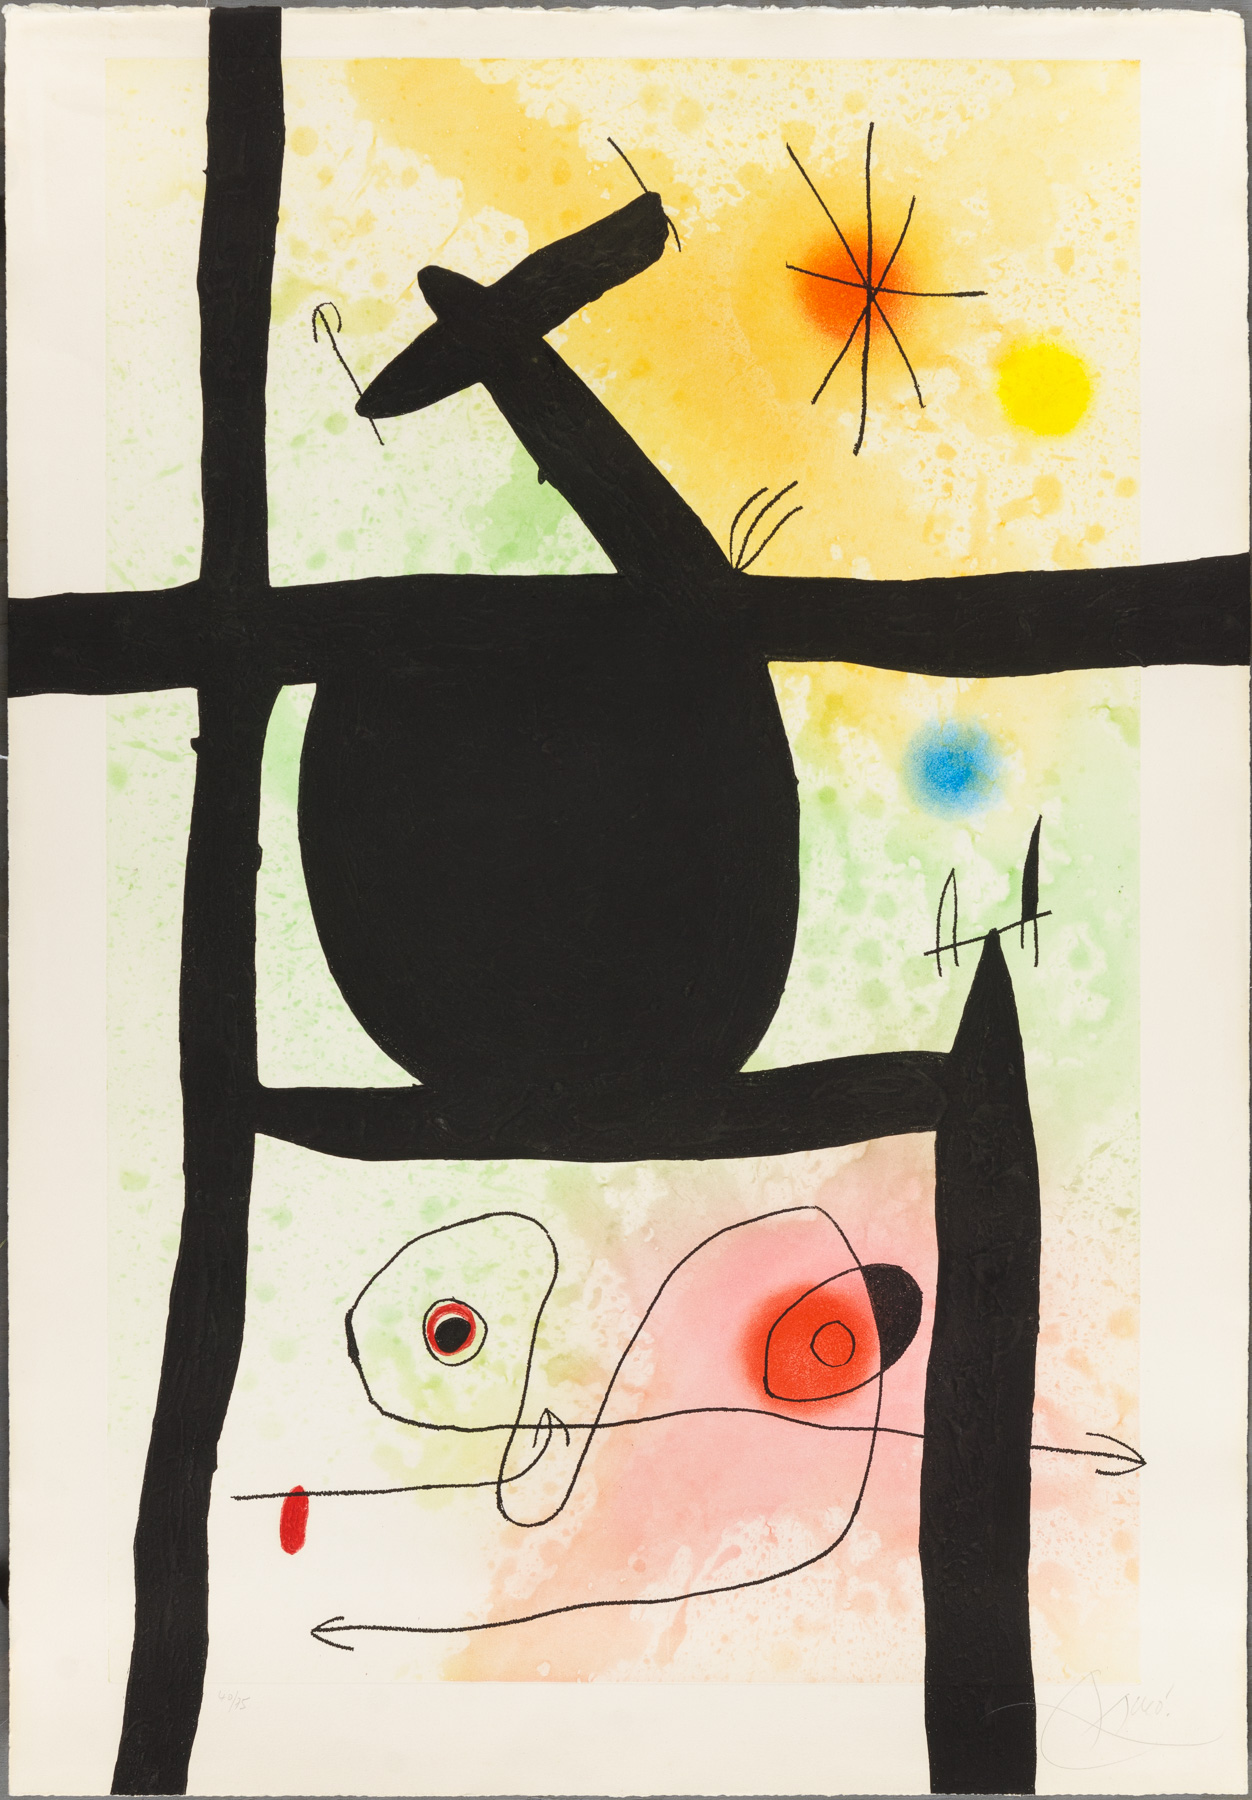 La Calebasse artwork by Joan Miro - art listed for sale on Artplode